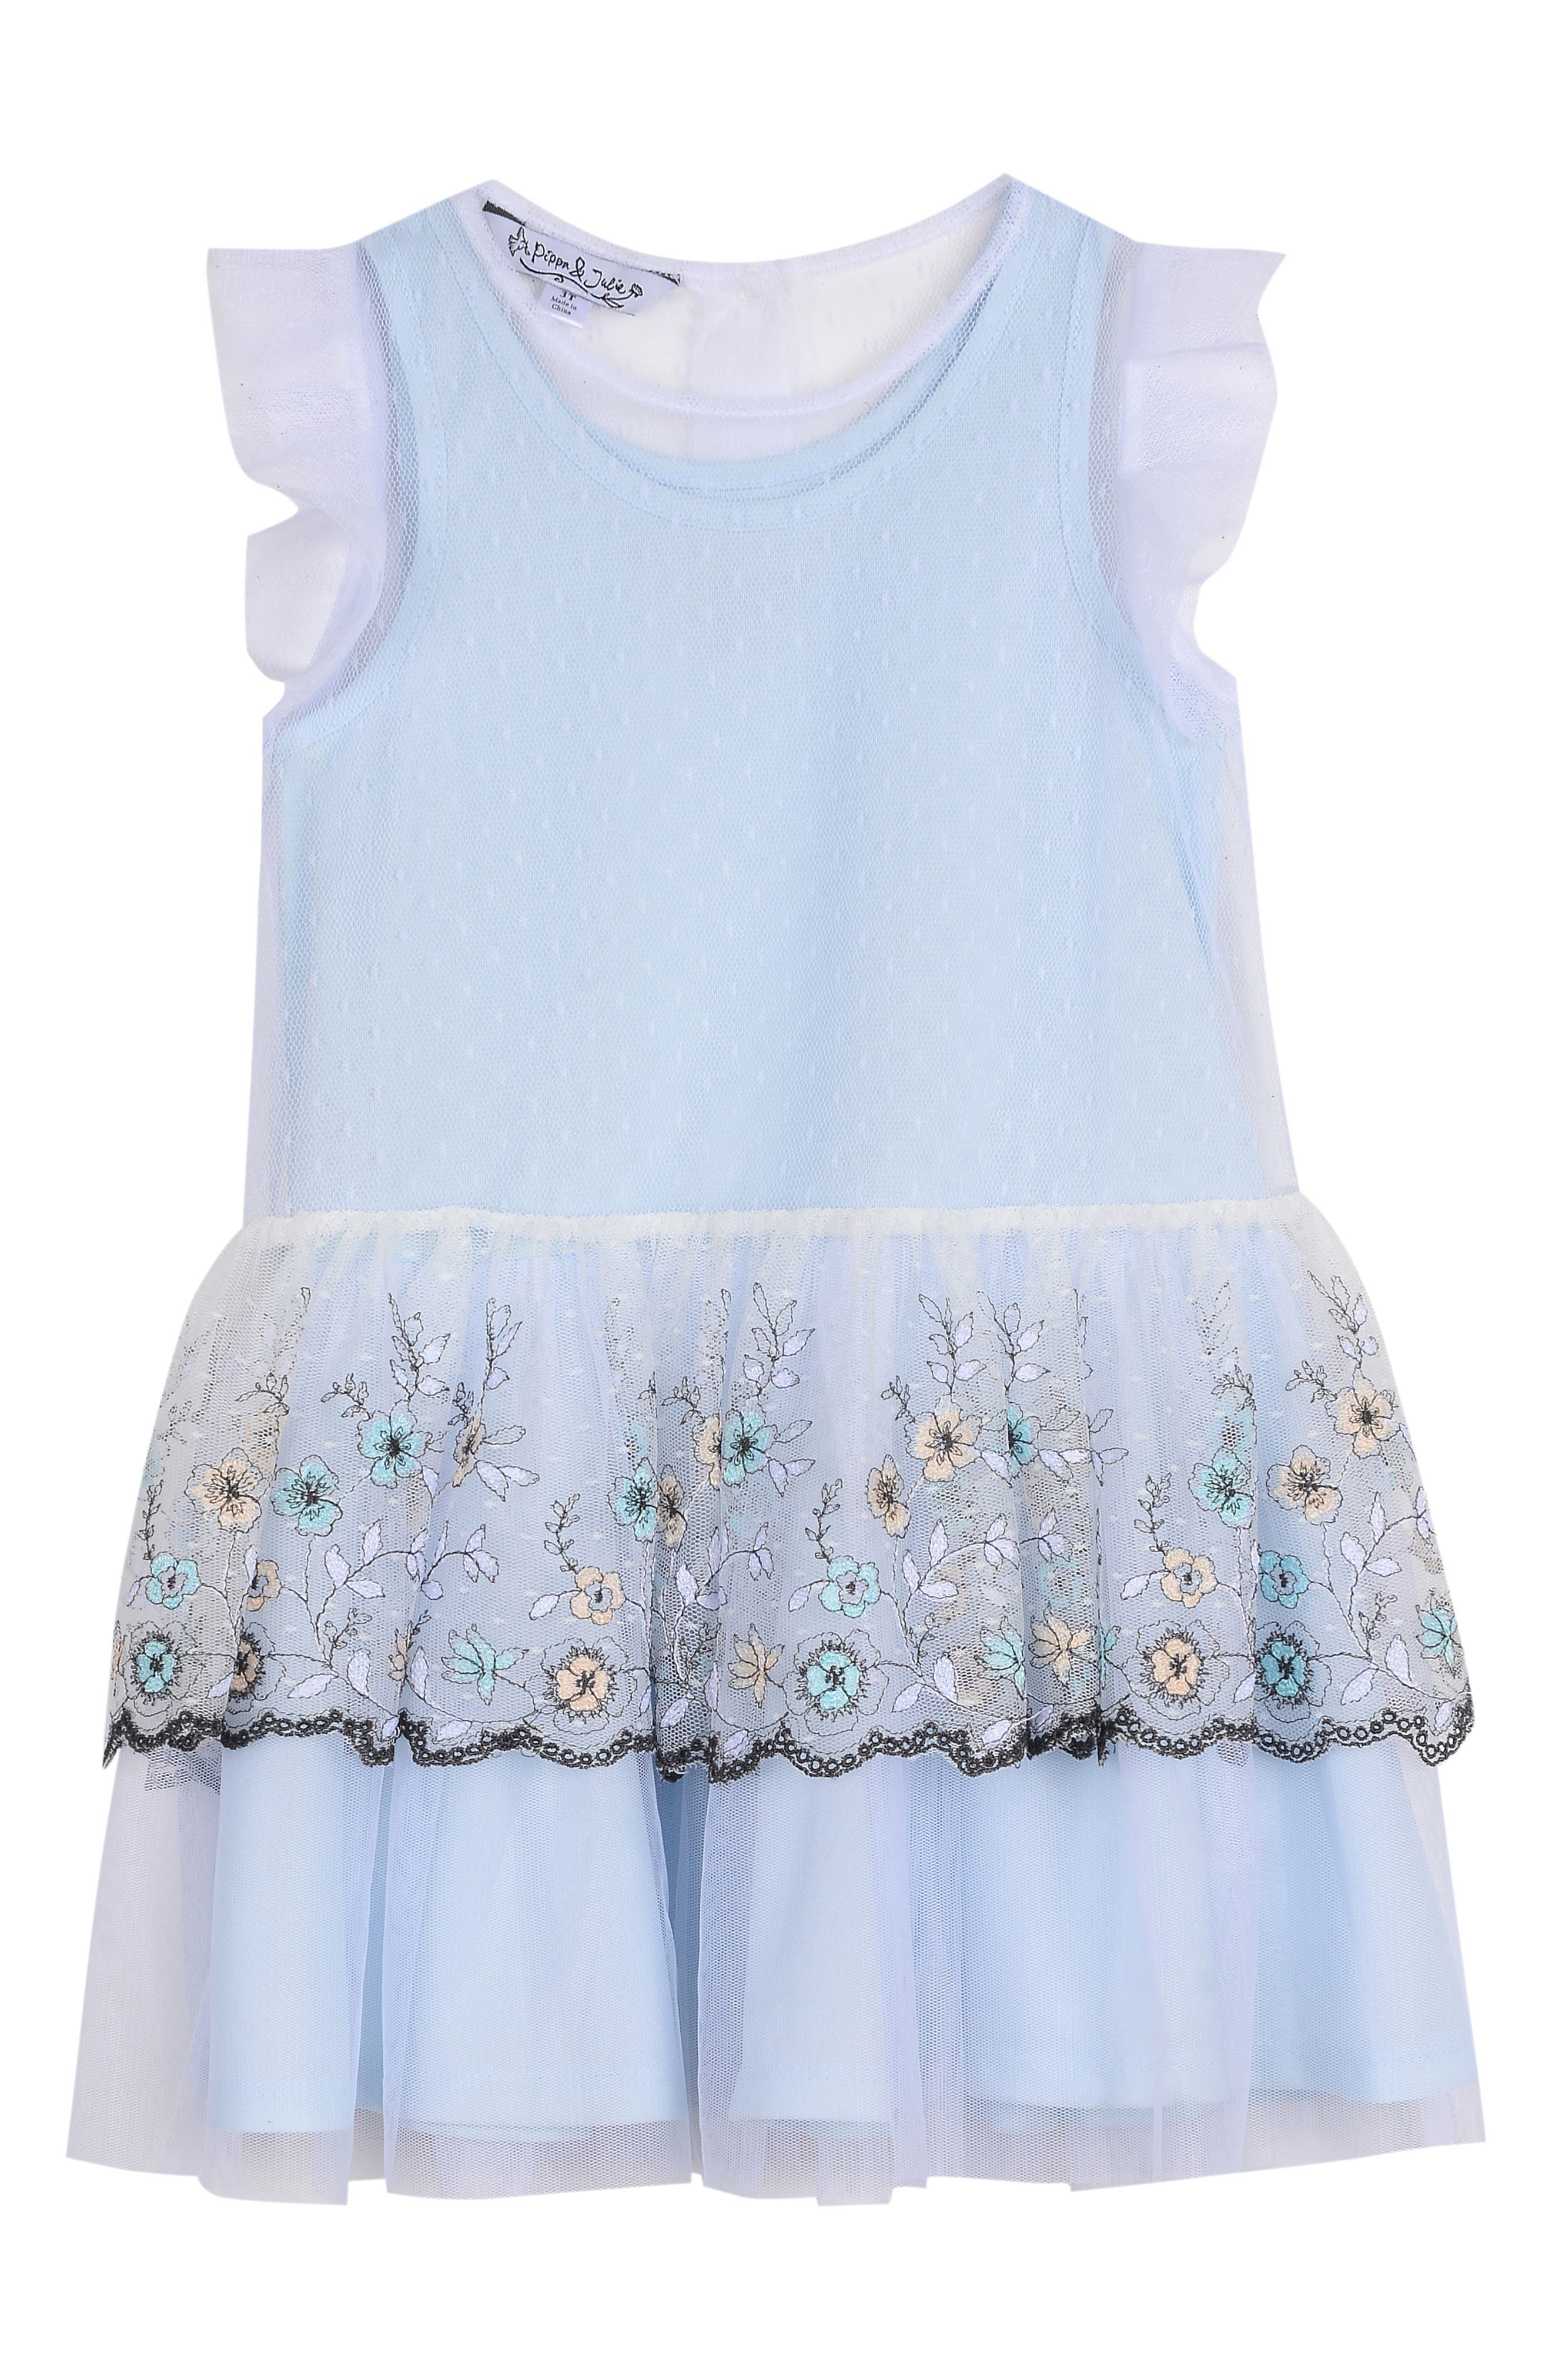 PIPPA & JULIE, Tulle Tier Overlay Dress, Main thumbnail 1, color, LIGHT BLUE